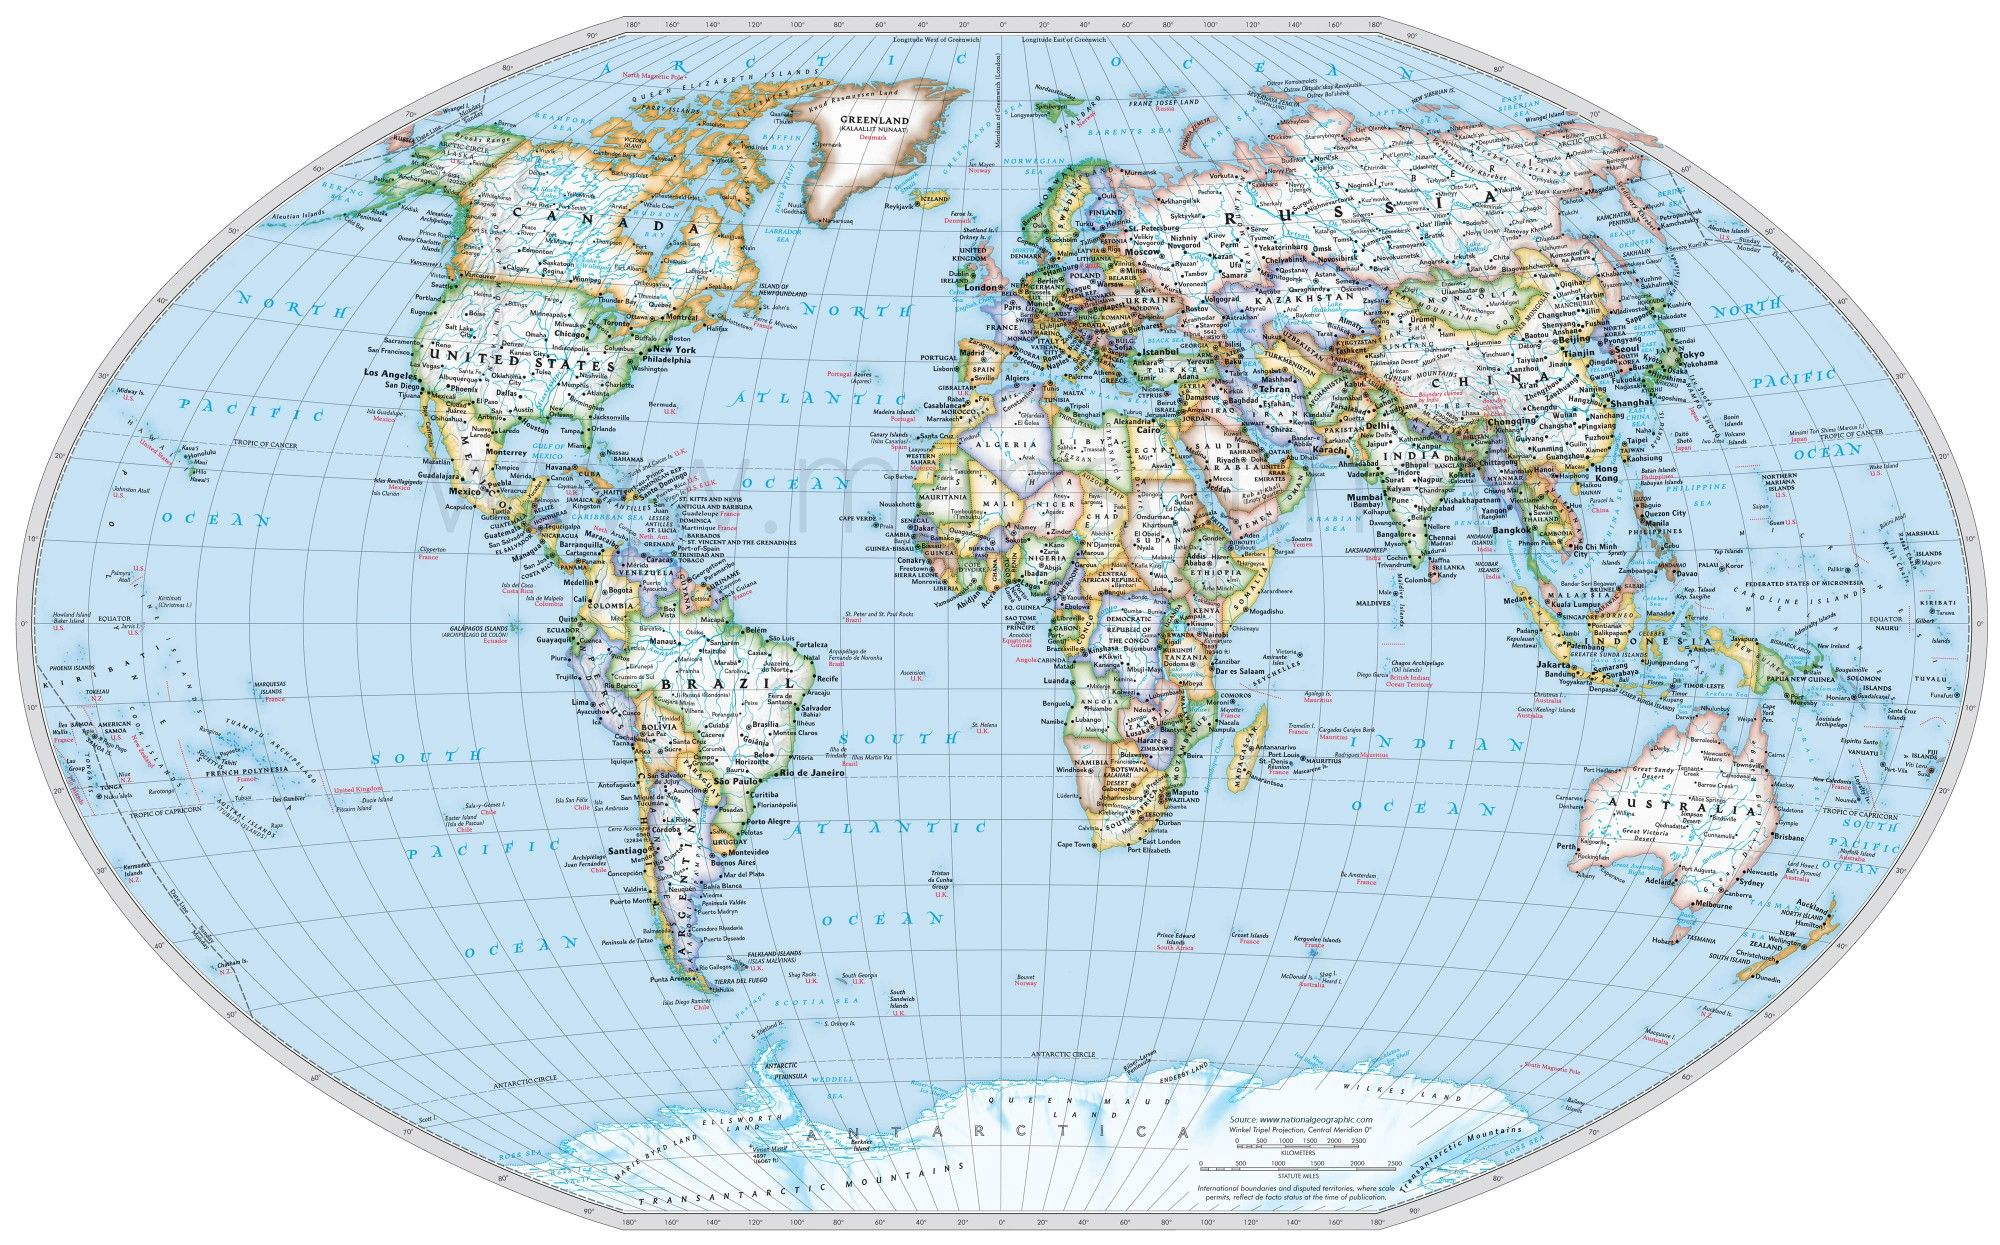 Pin by radialv on world map pinterest explore world political map 7 continents and more gumiabroncs Image collections